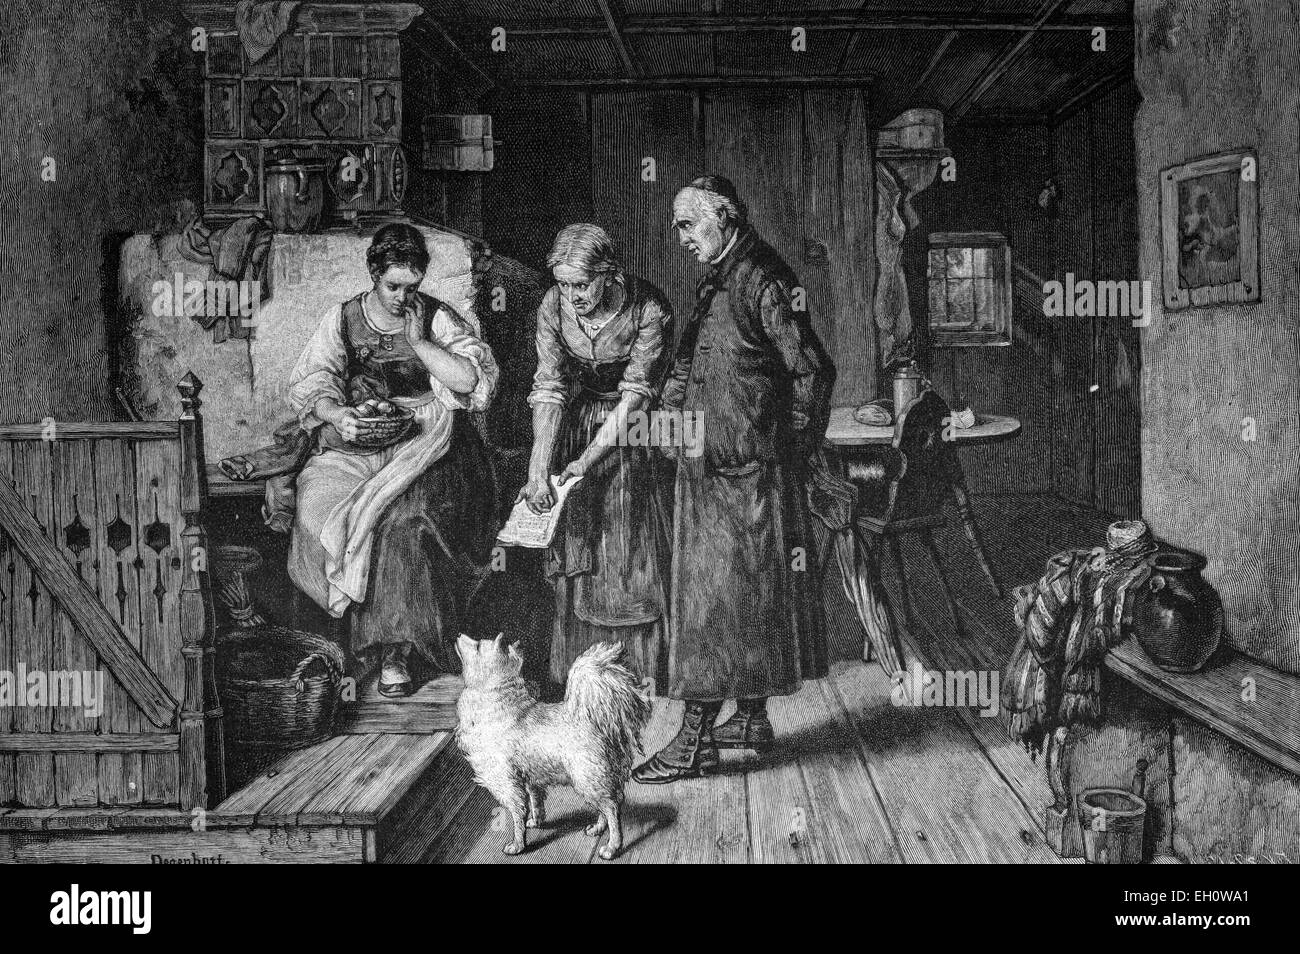 The discovered love letter, historical illustration, about 1886 - Stock Image